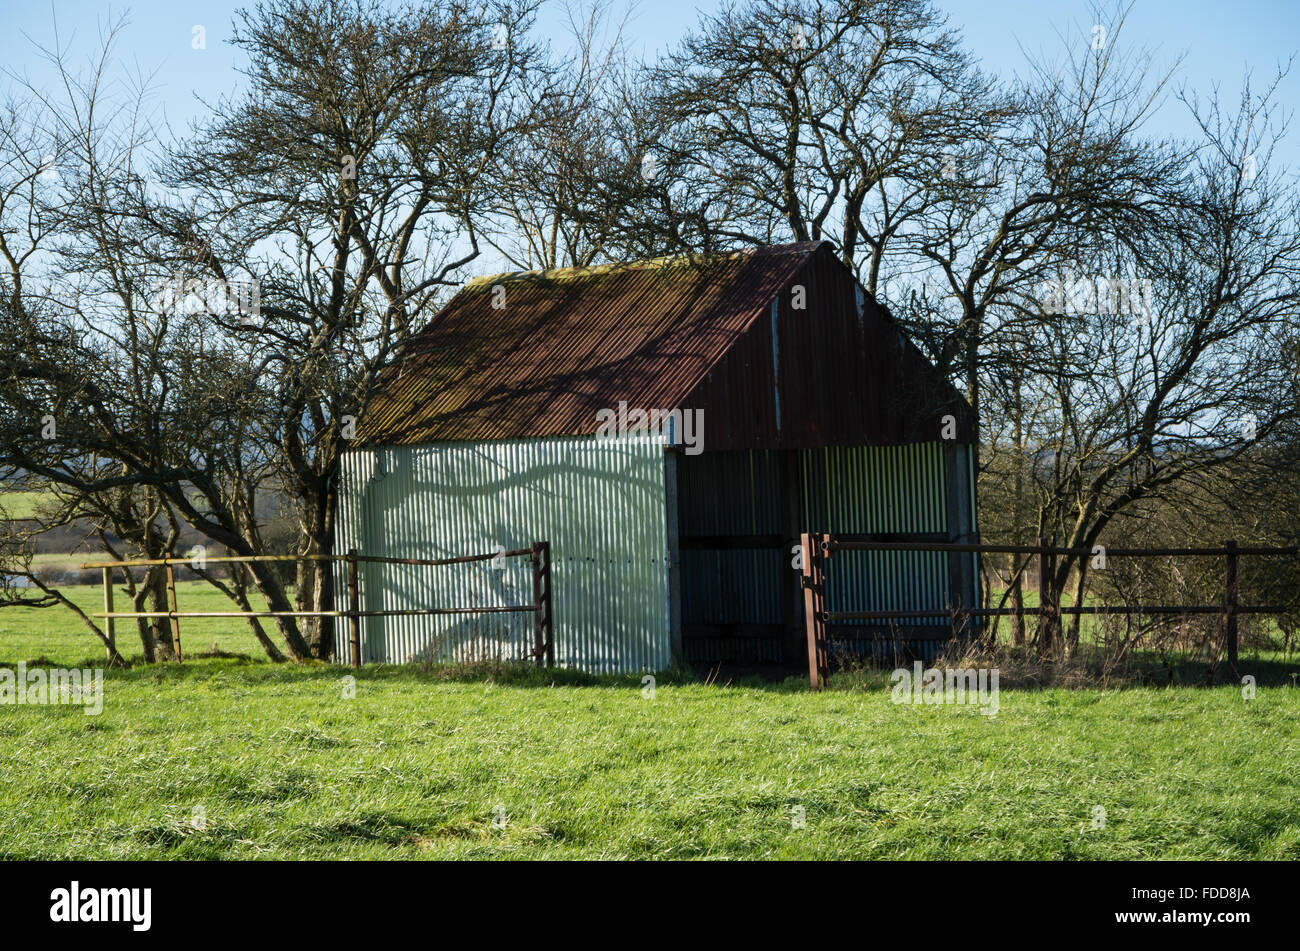 A corrugated metal shed or barn in a field surrounded by trees in the Sussex countryside in Winter, UK. - Stock Image